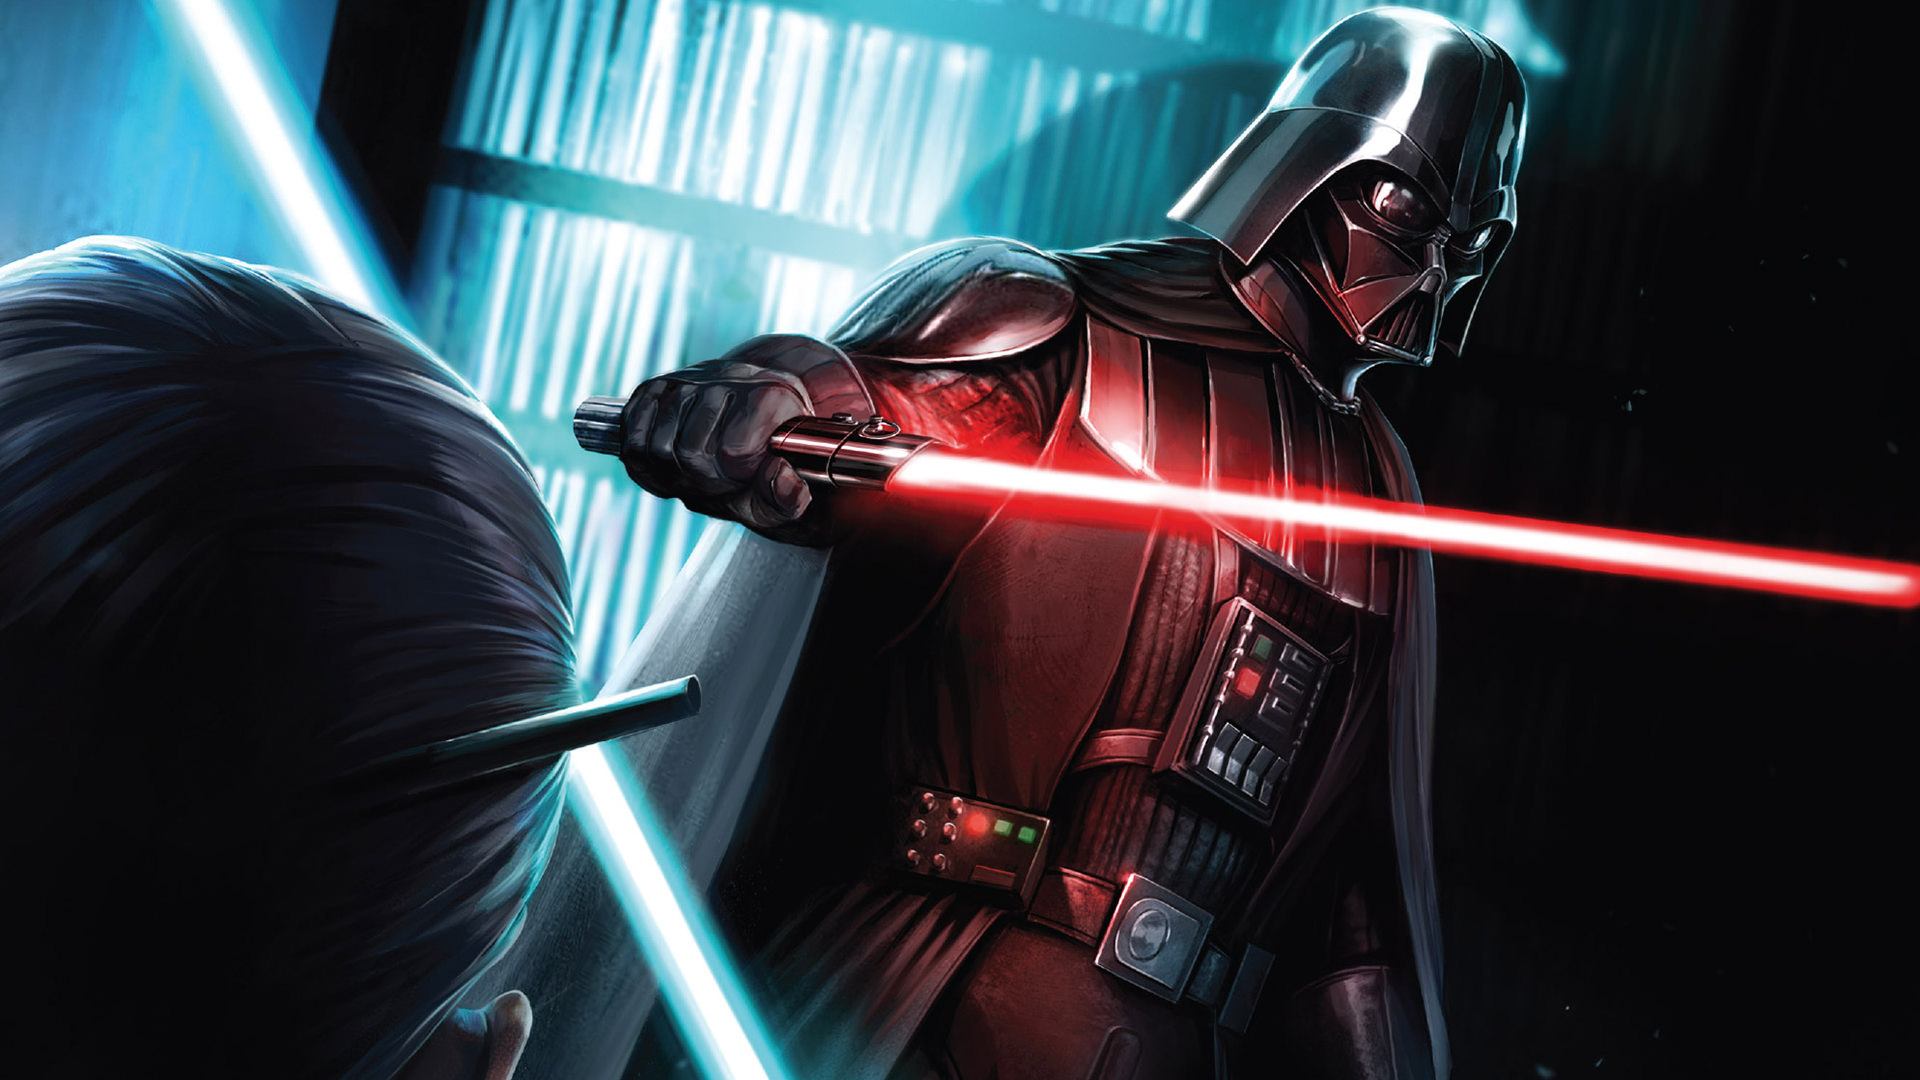 Darth Vader Lightsaber Hd Movies 4k Wallpapers Images